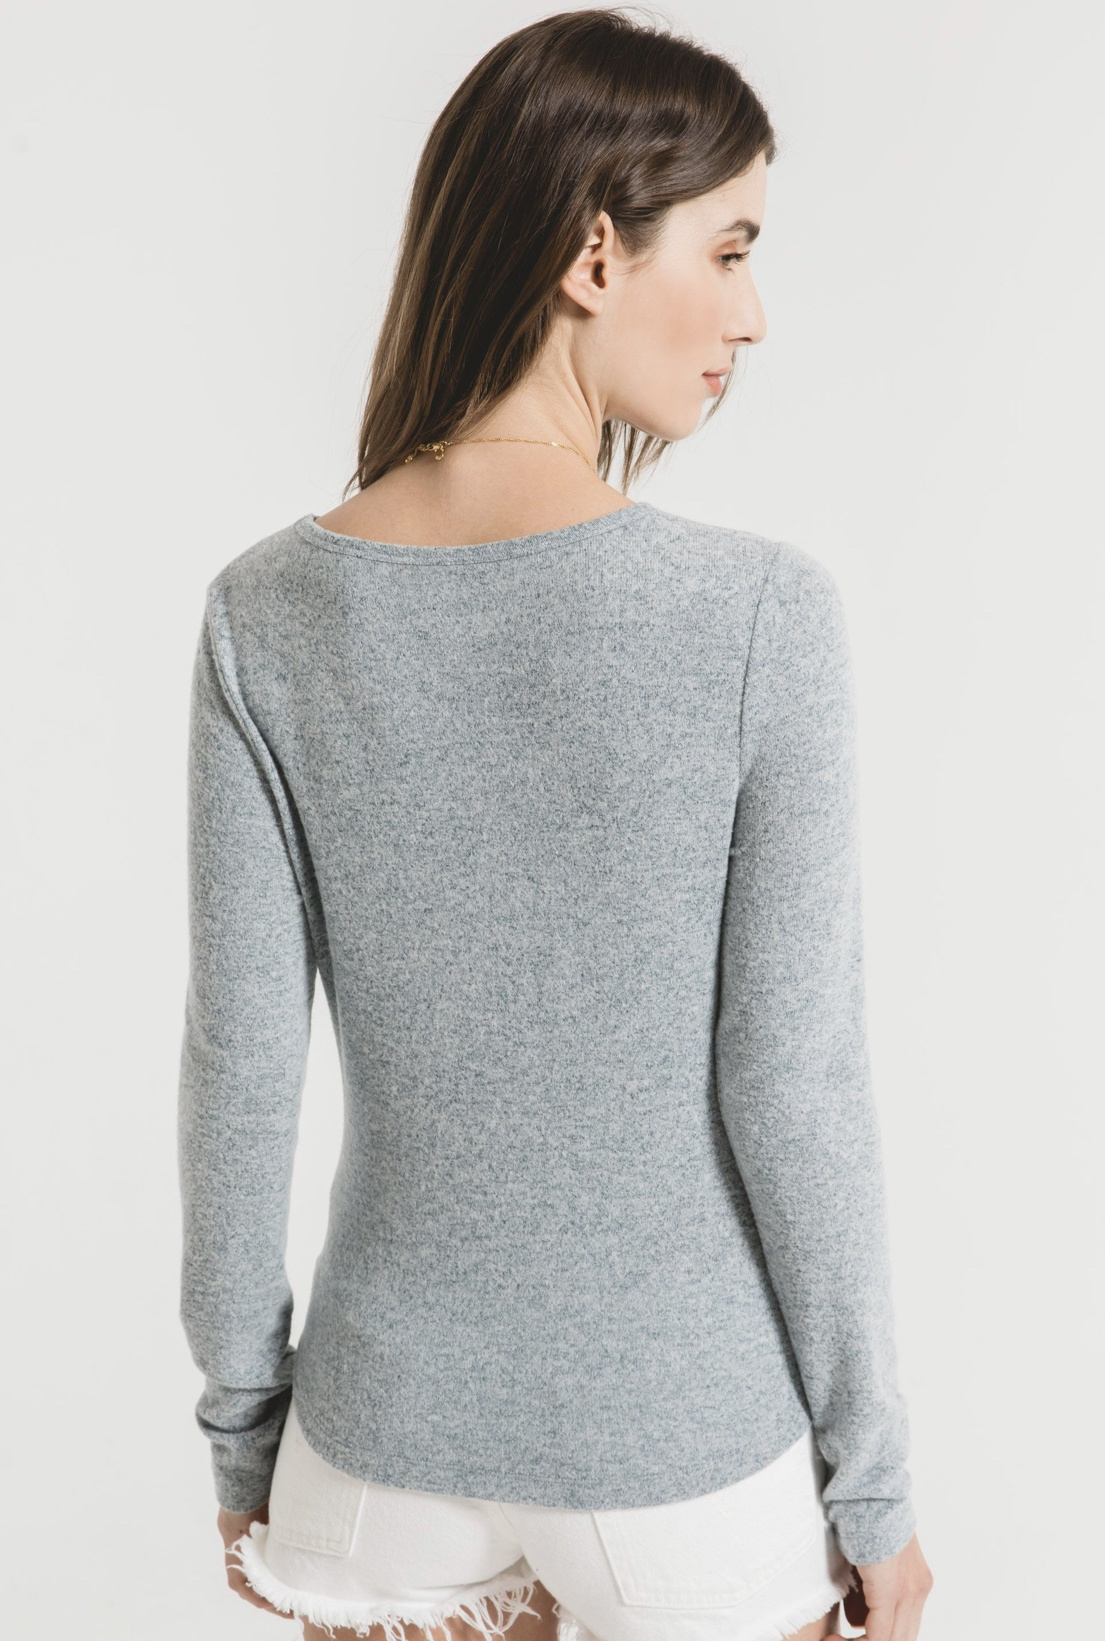 Z Supply Marled Fitted Top - Storm